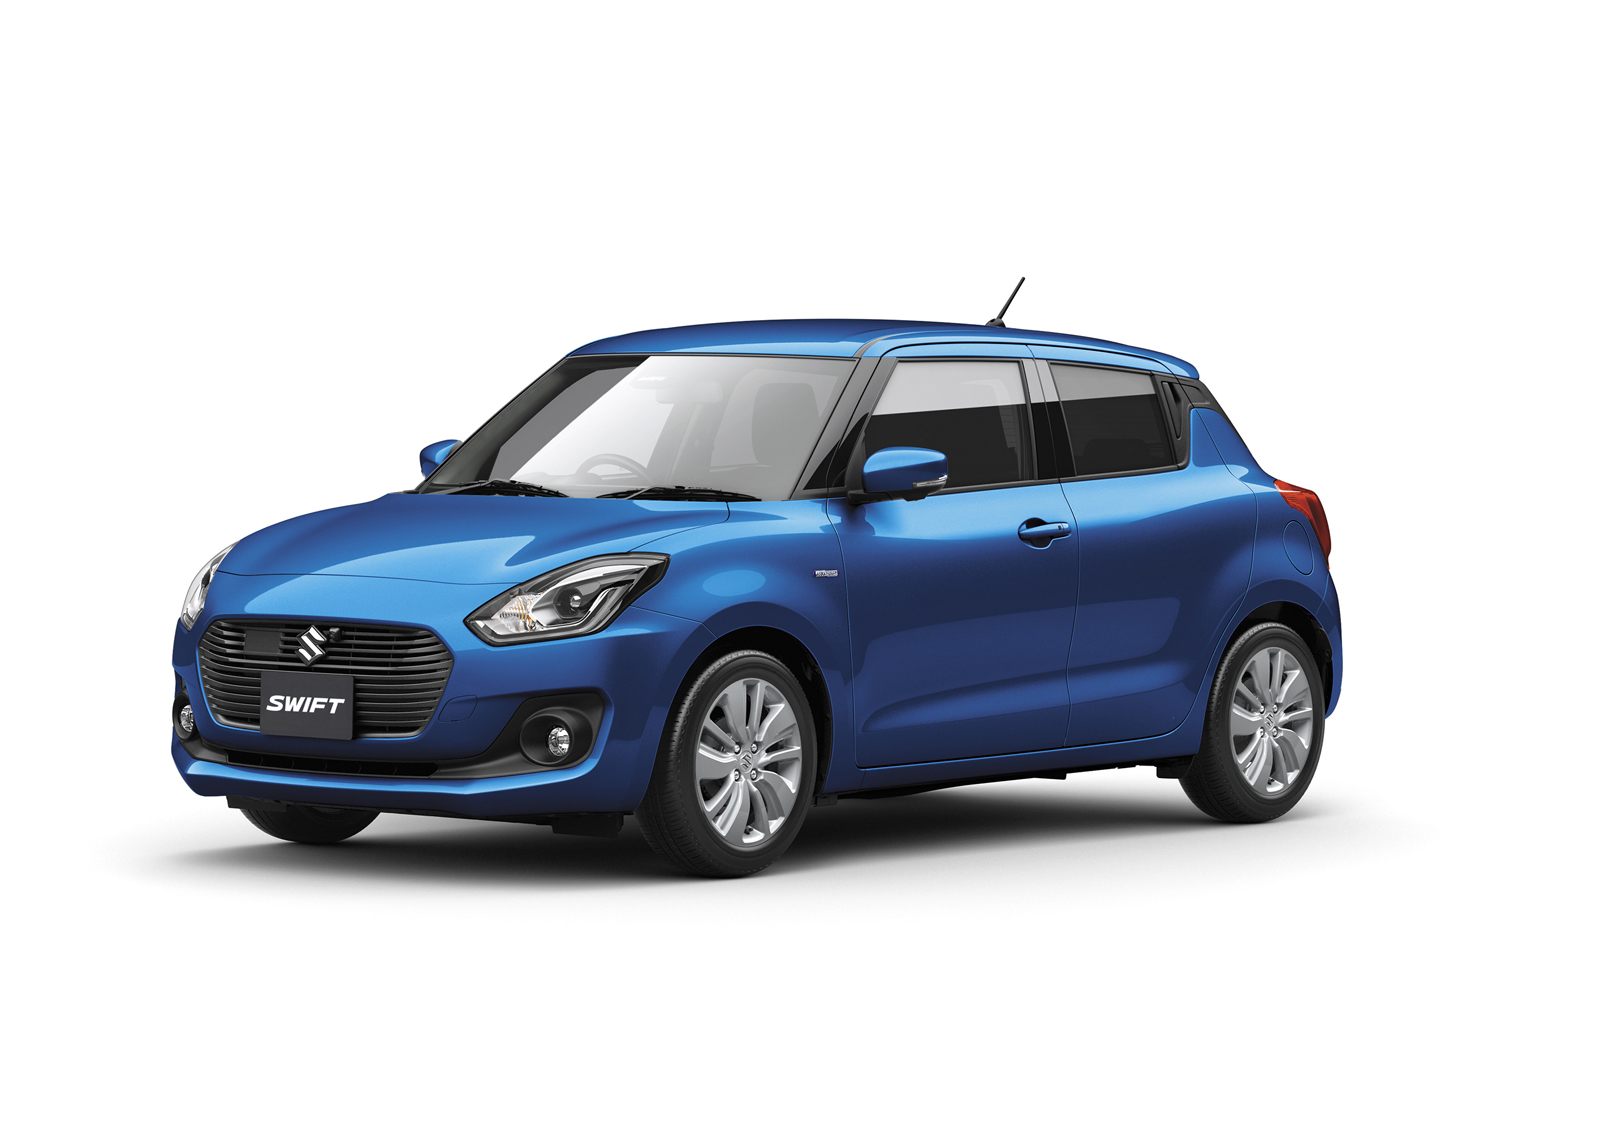 Suzuki Swift 2017 (9)